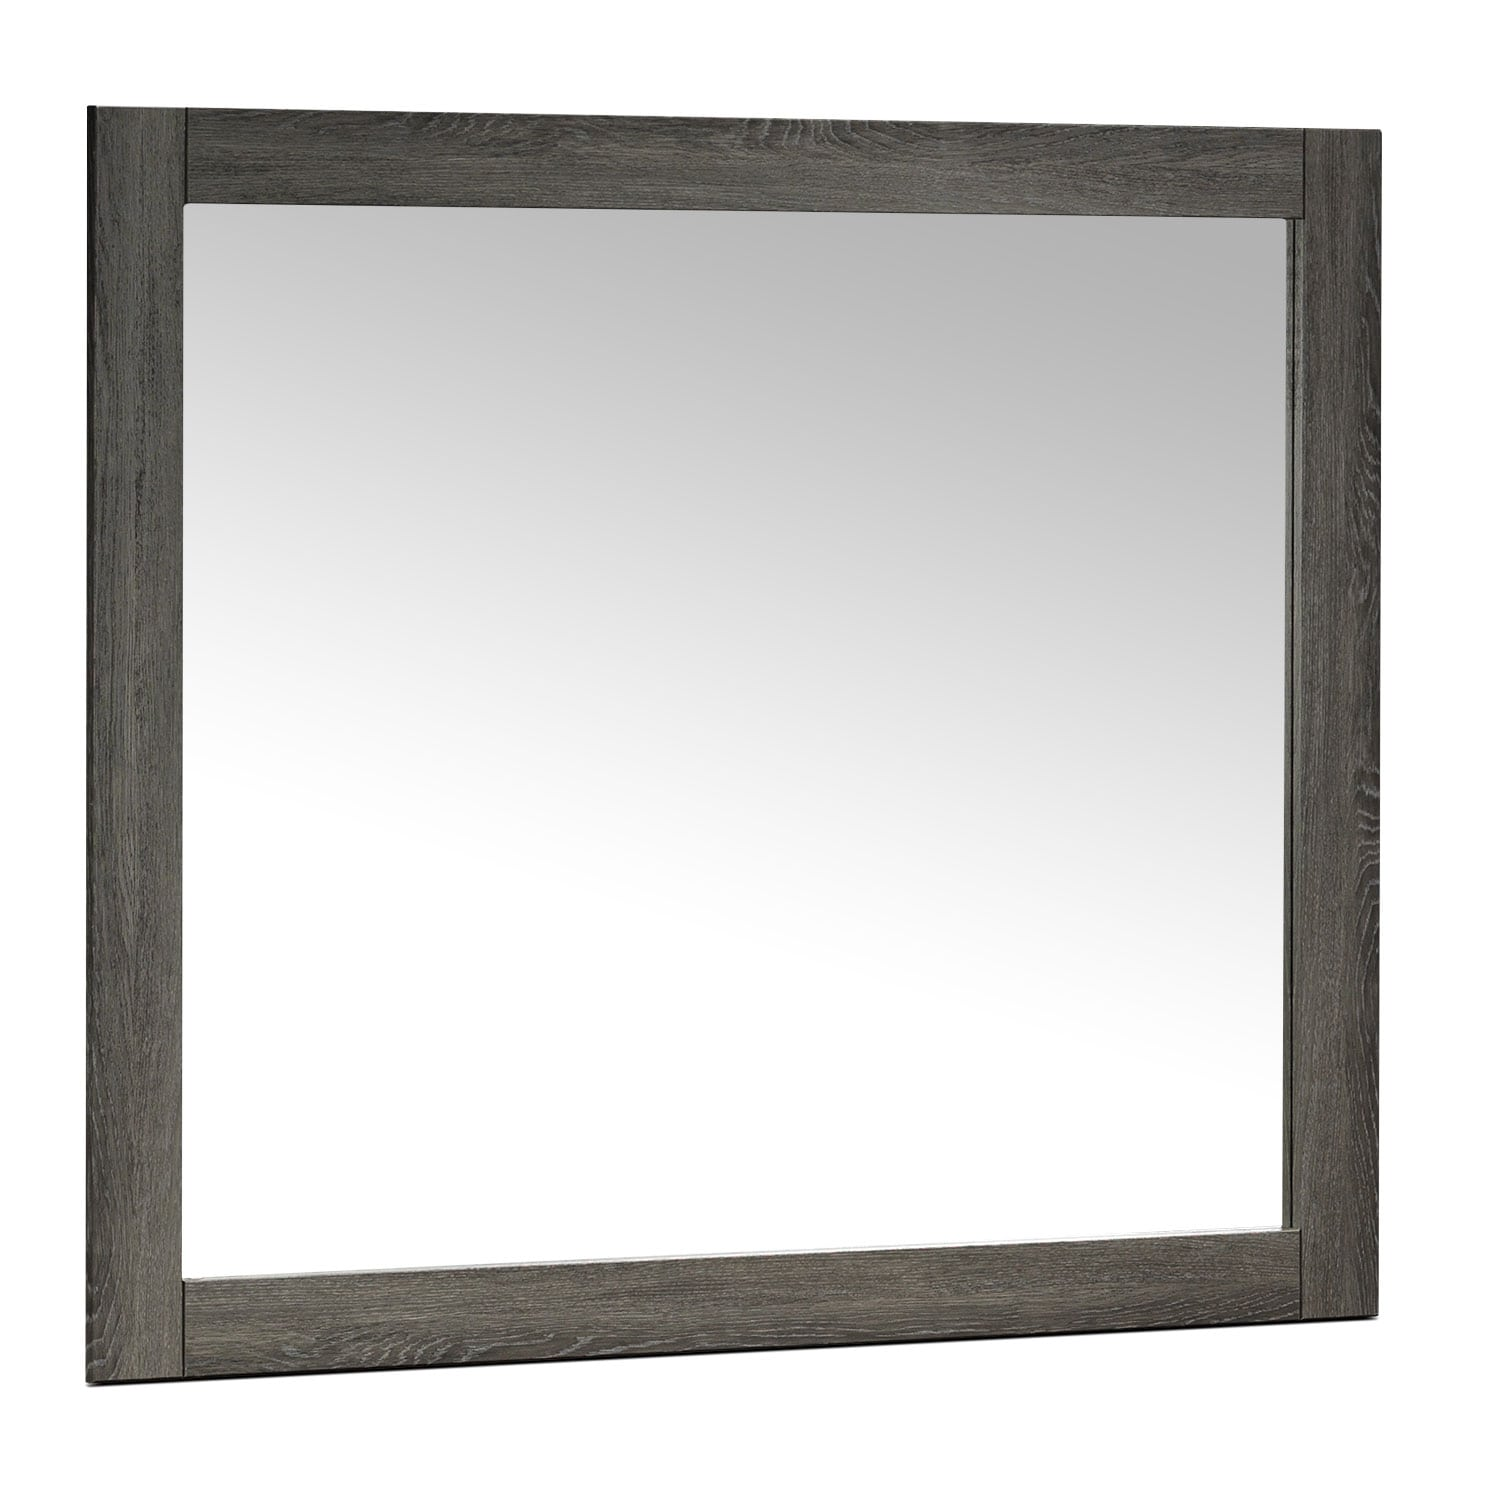 Bedroom Furniture - Driftwood Mirror - Rustic Brown